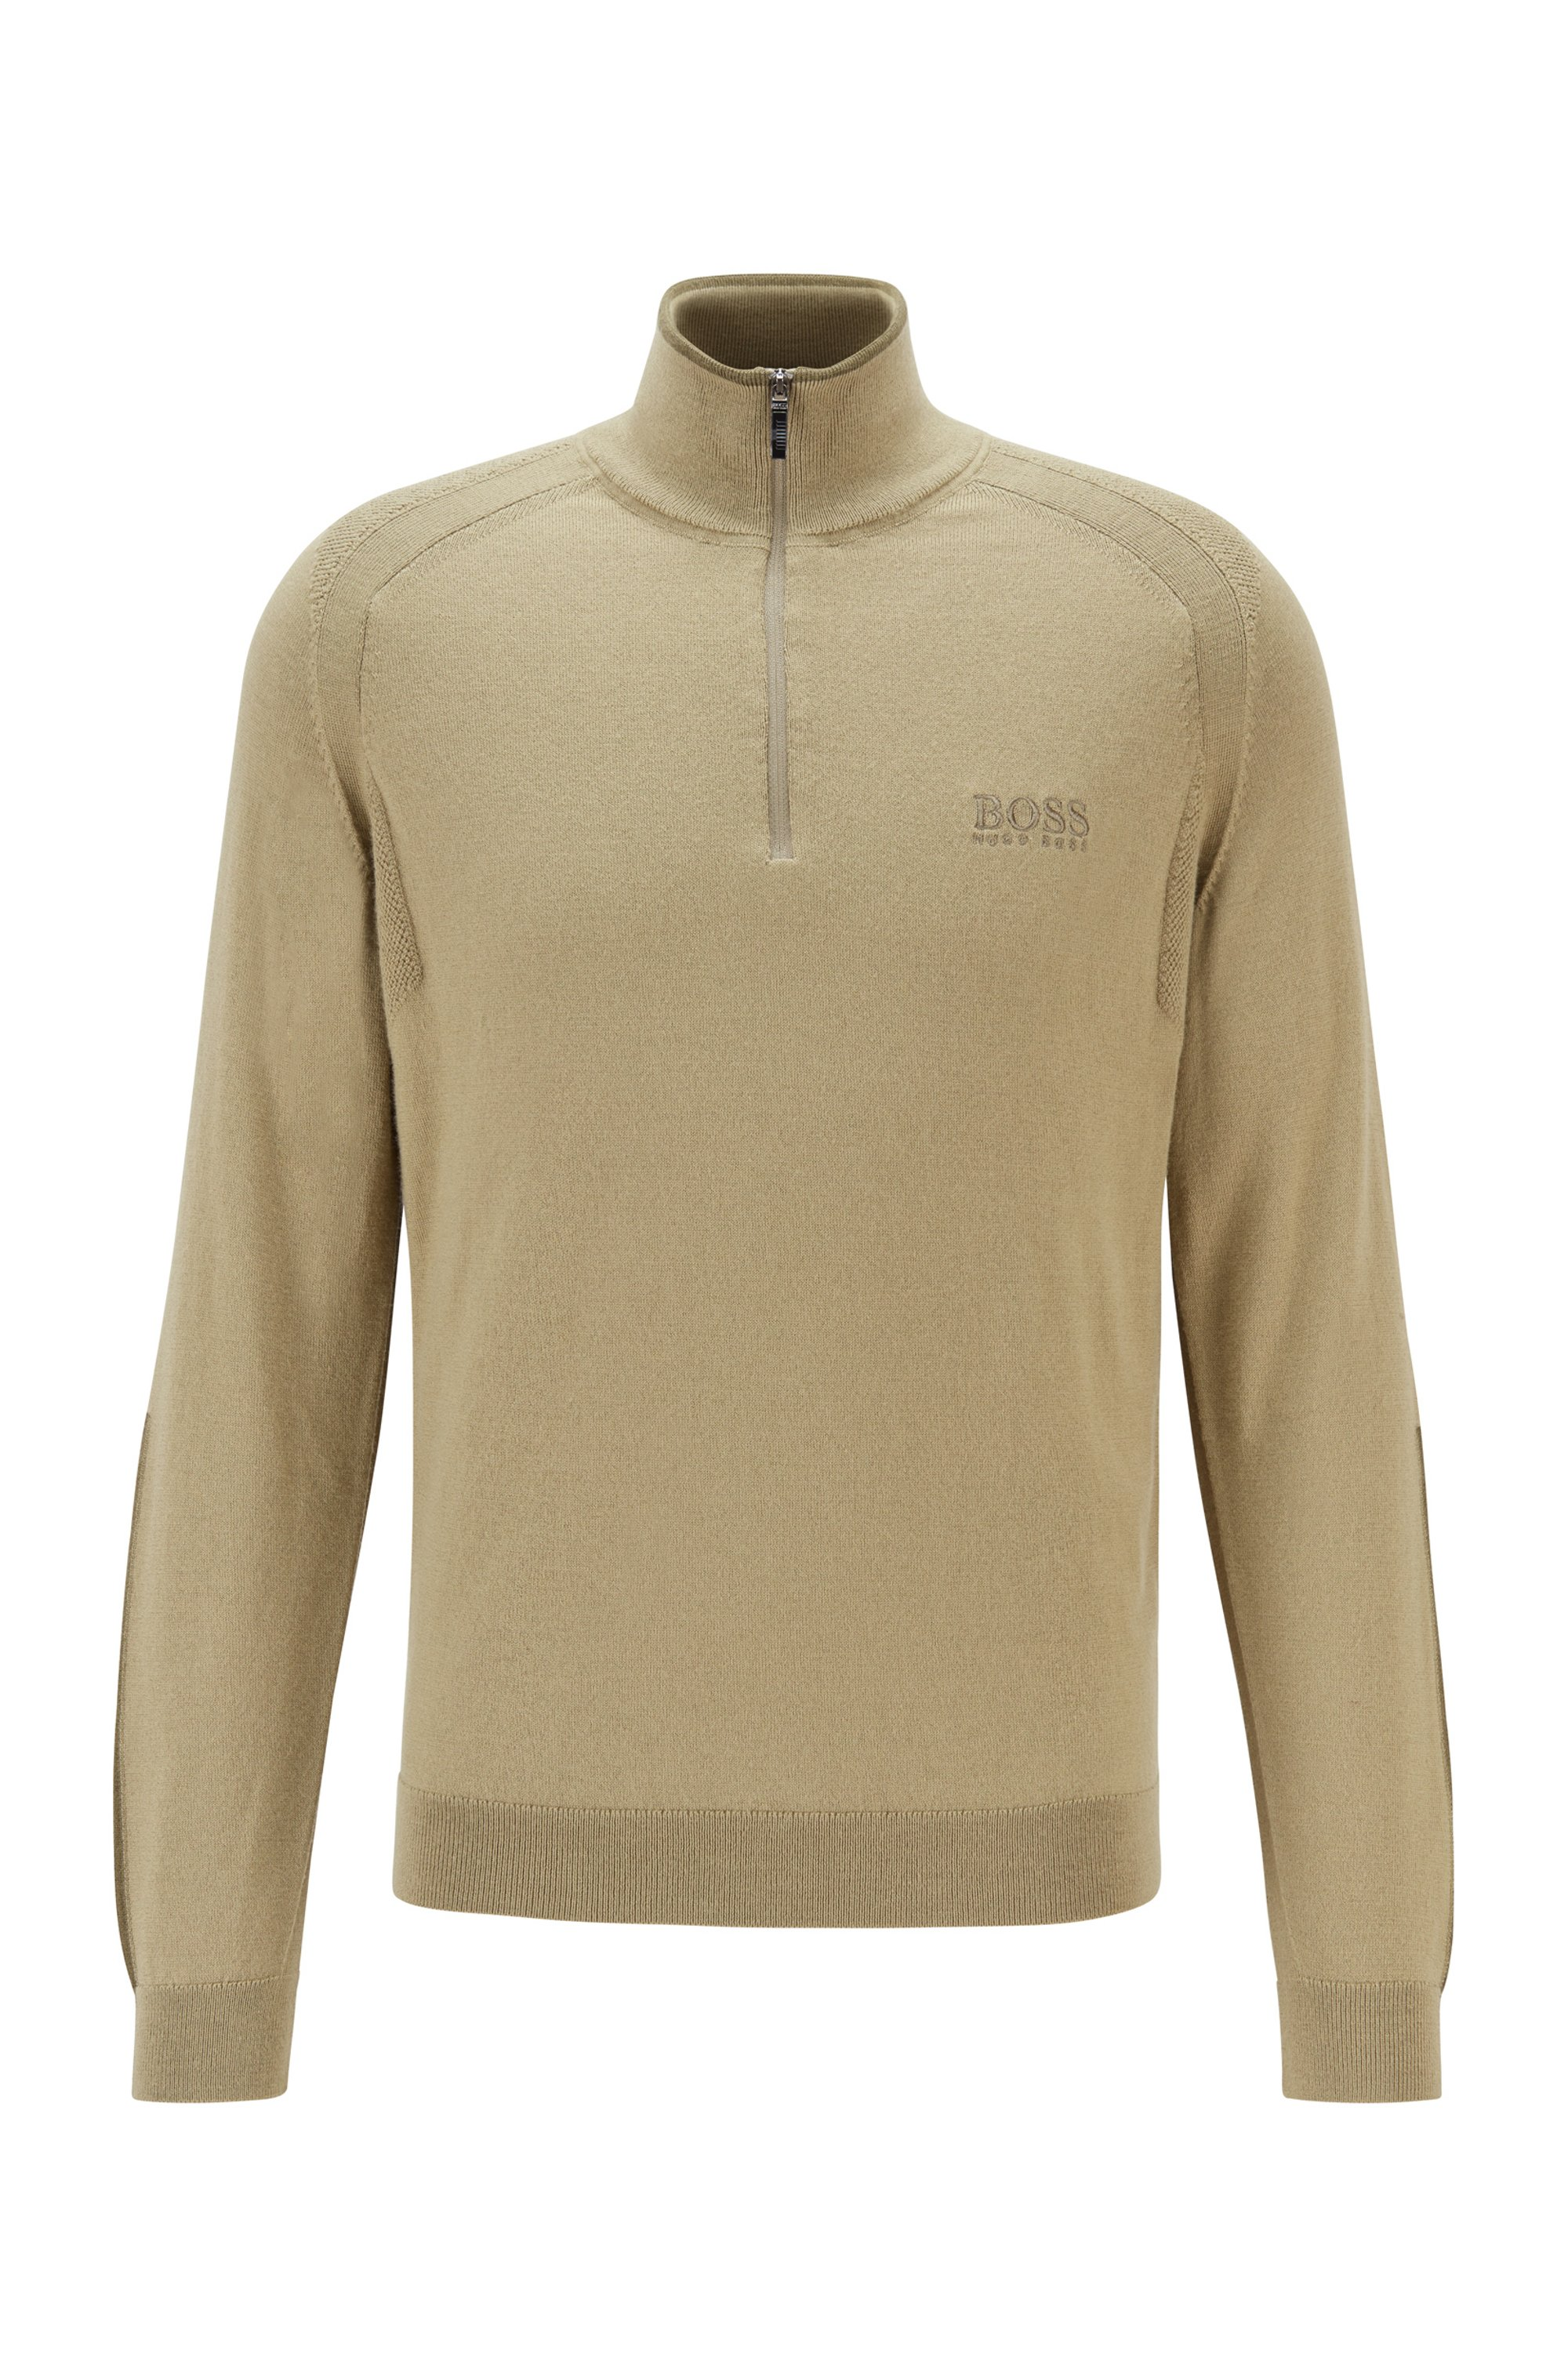 Regular-fit zip-neck sweater with logo embroidery, Beige